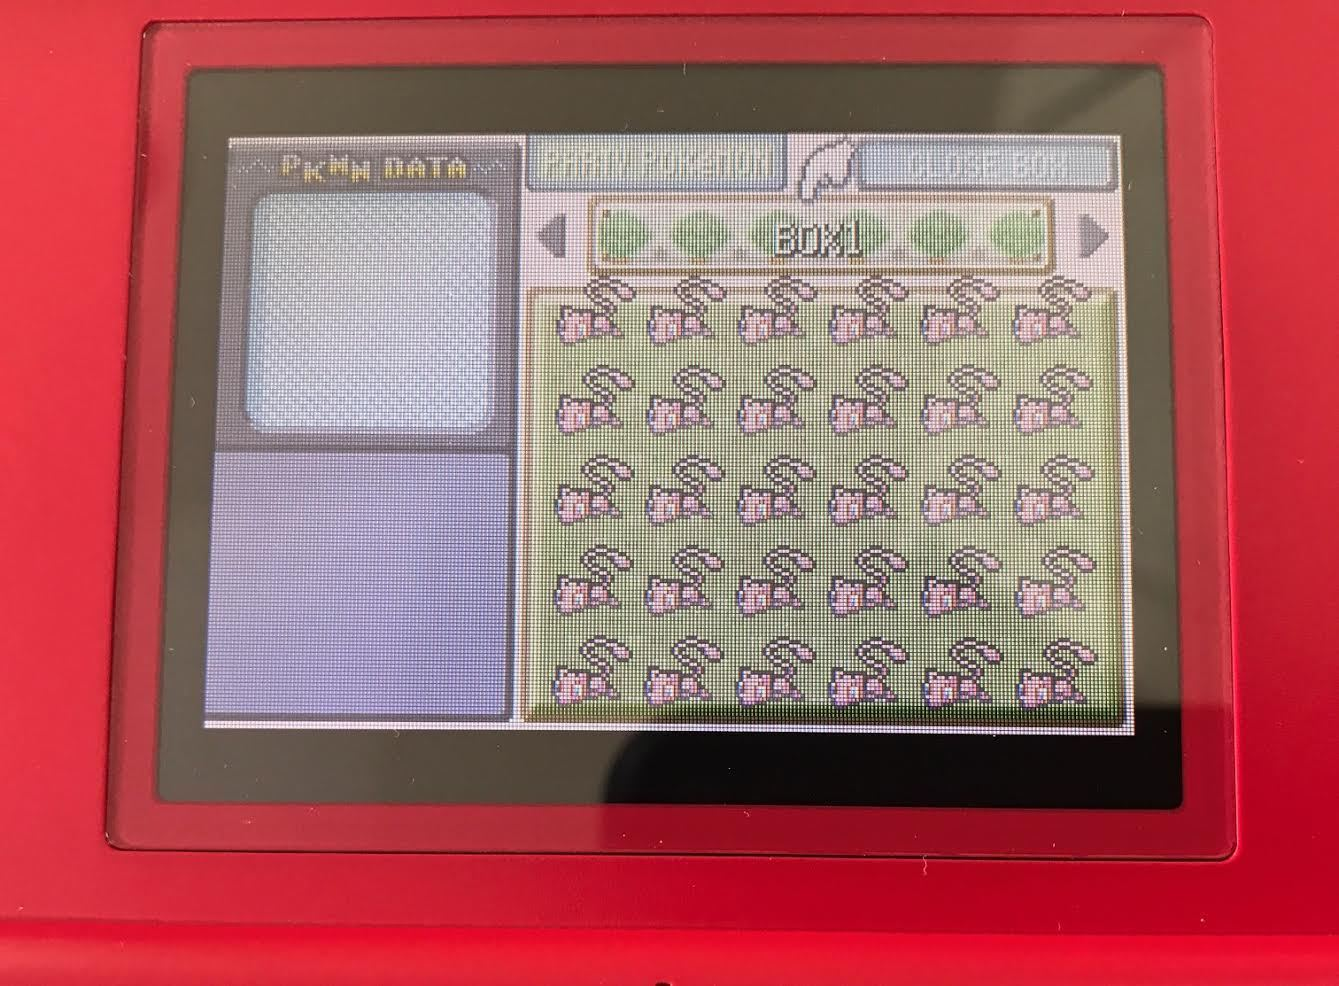 Community Outreach - Donations for Very Rare MYSTRY Mew Cartridge